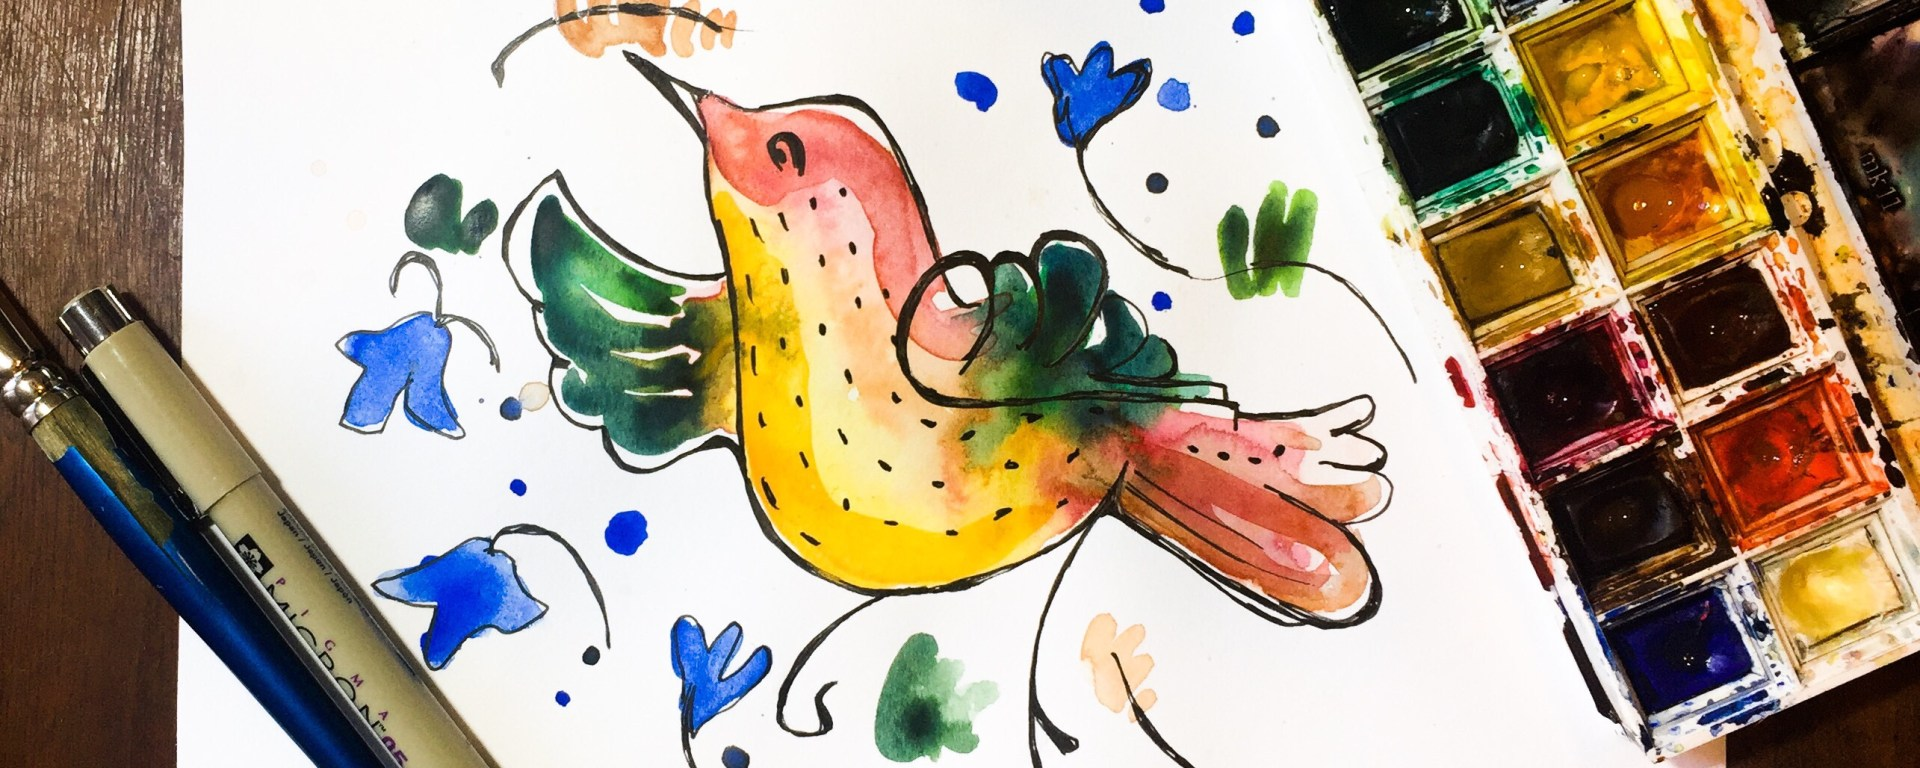 Learn how to paint a watercolor bird and floral pattern inspired by the ceramics of my trip to Deruta, Italy.